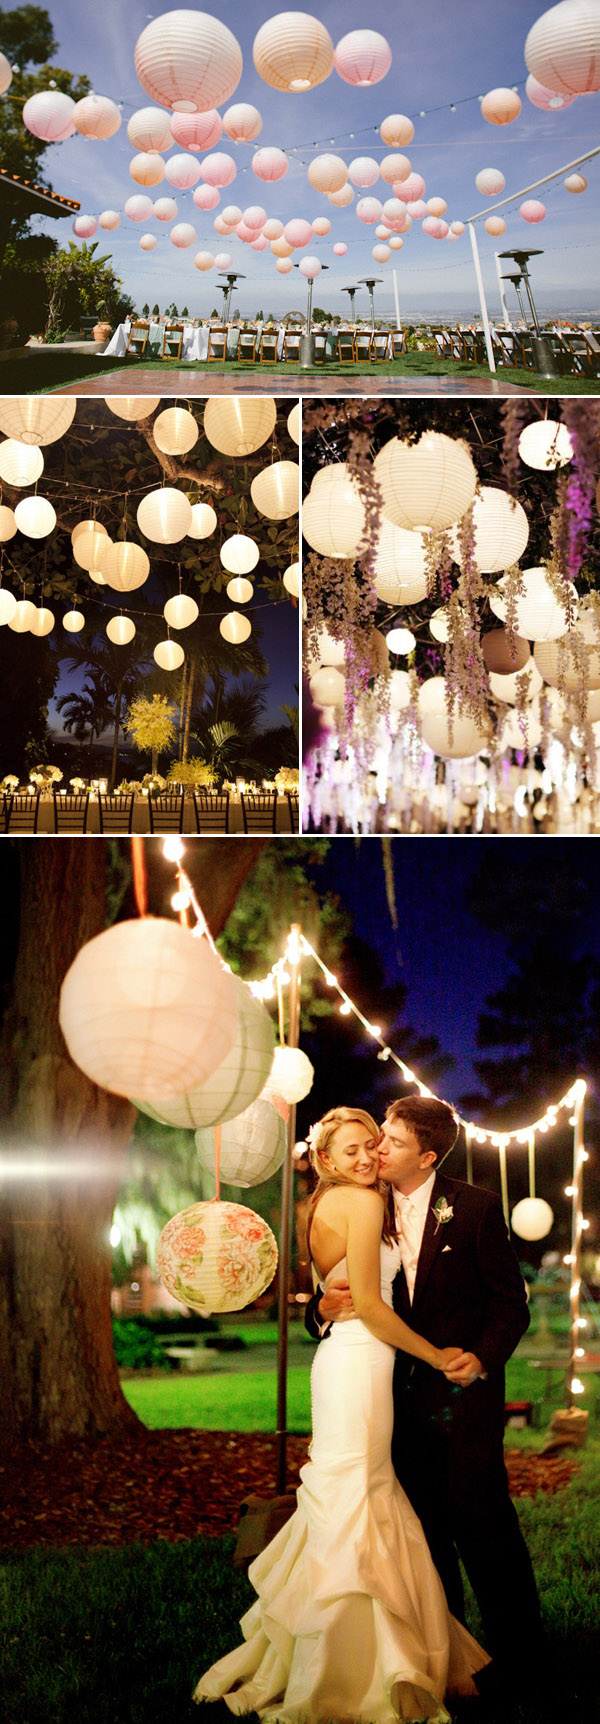 Outdoor Wedding Ideas 20 Amazing Ways To Use Floating Lanterns Elegantweddinginvites Com Blog